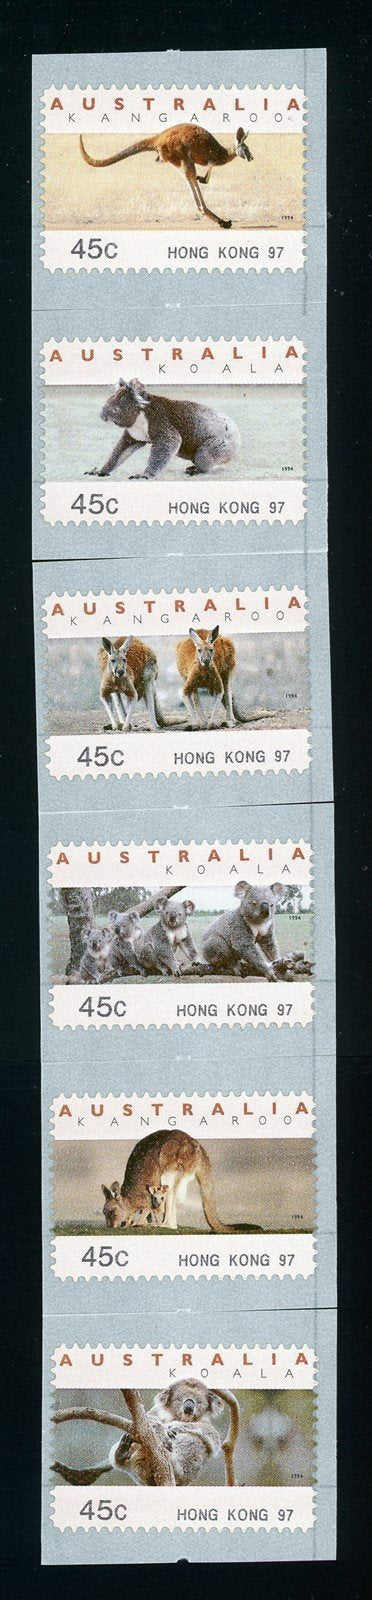 Australia Scott #1295a-10 SA COIL STAMP Animals FAUNA Hong Kong 97 CV$8+